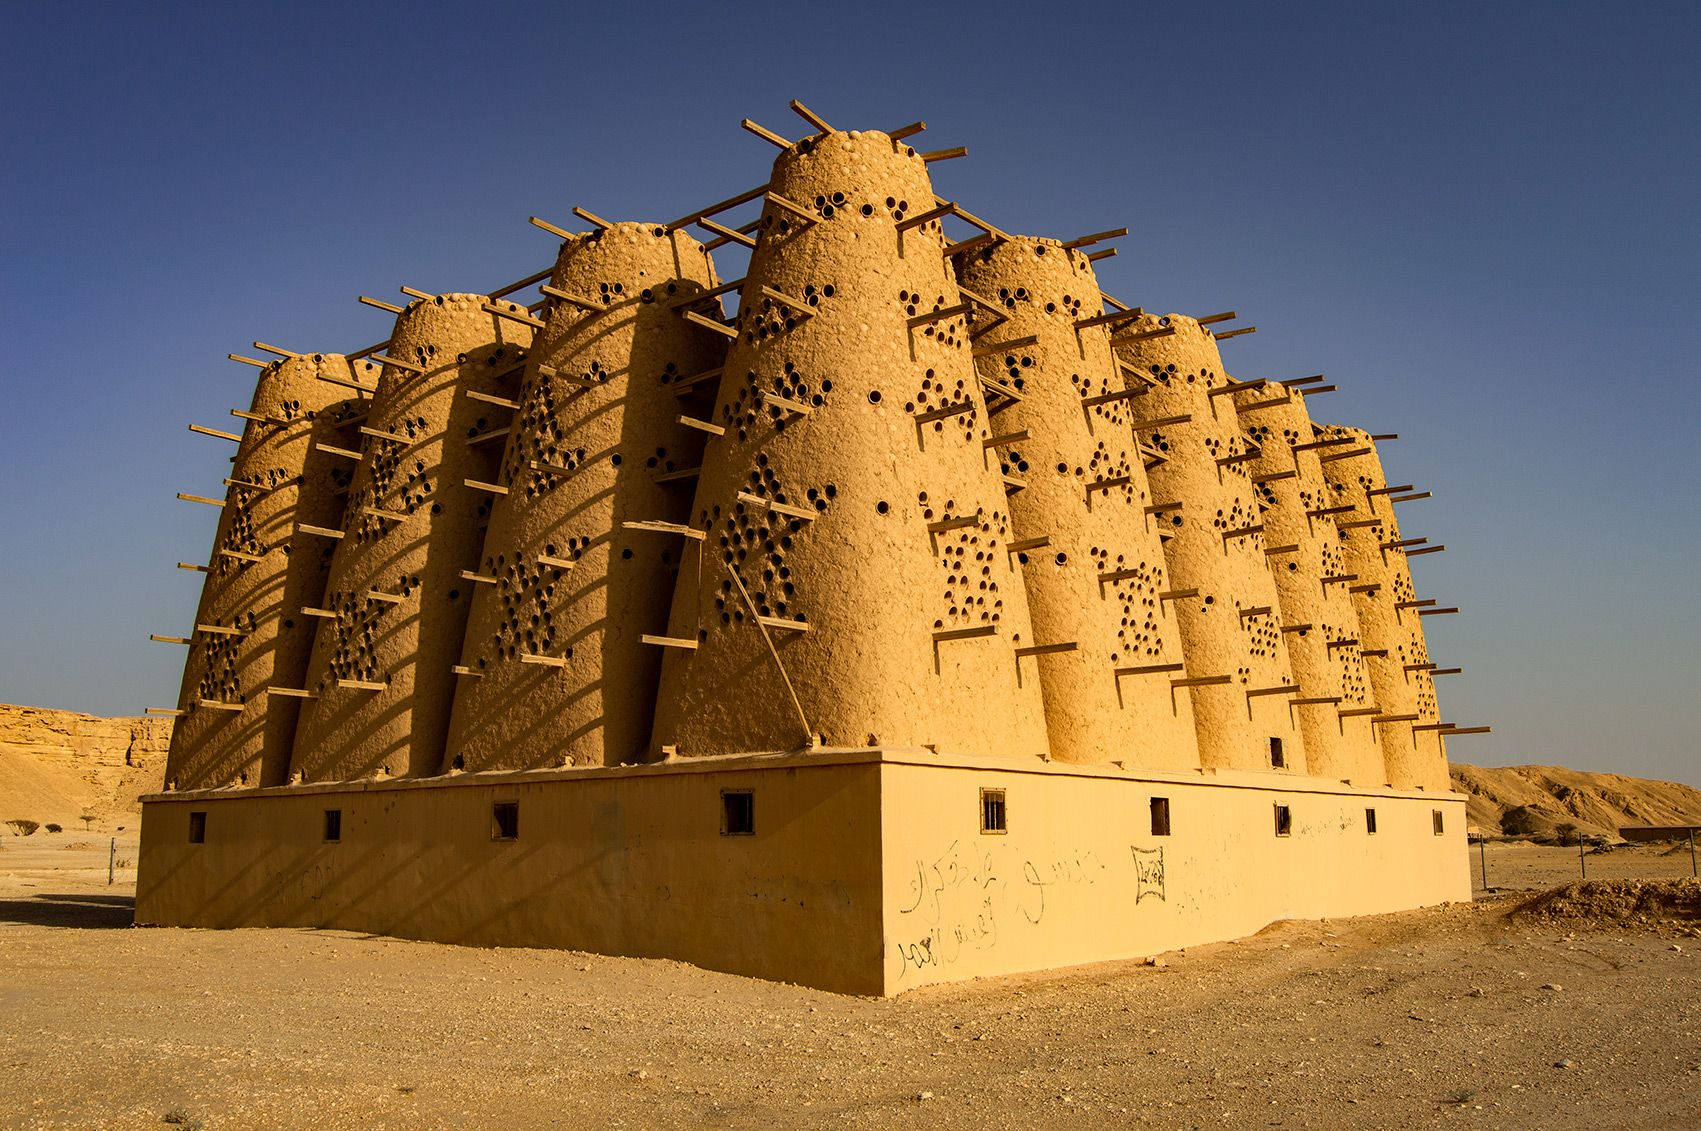 Historical Adobe Pigeon Towers Located Near Riyadh Captured In Photographs By Rich Hawkins Tower Ancient Architecture Modern City